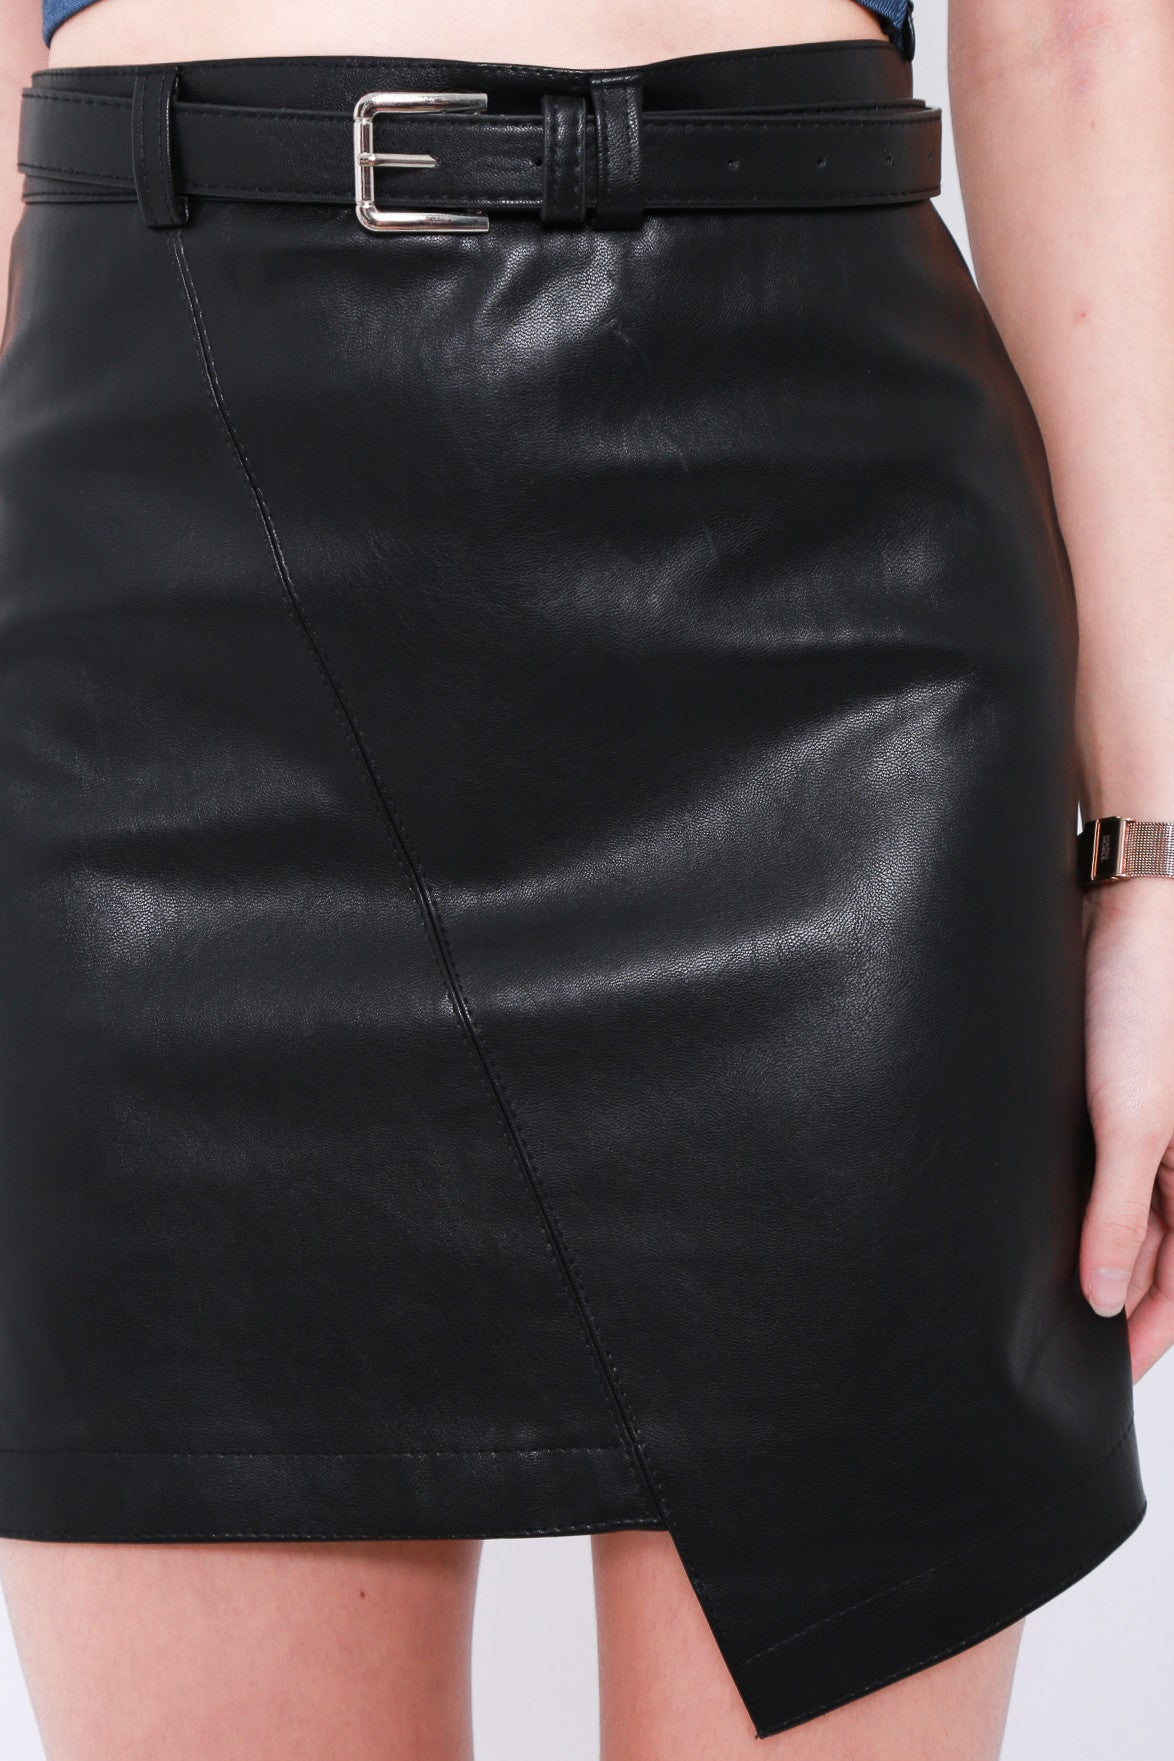 LEWIS ASYMMETRICAL LEATHER SKIRT IN BLACK